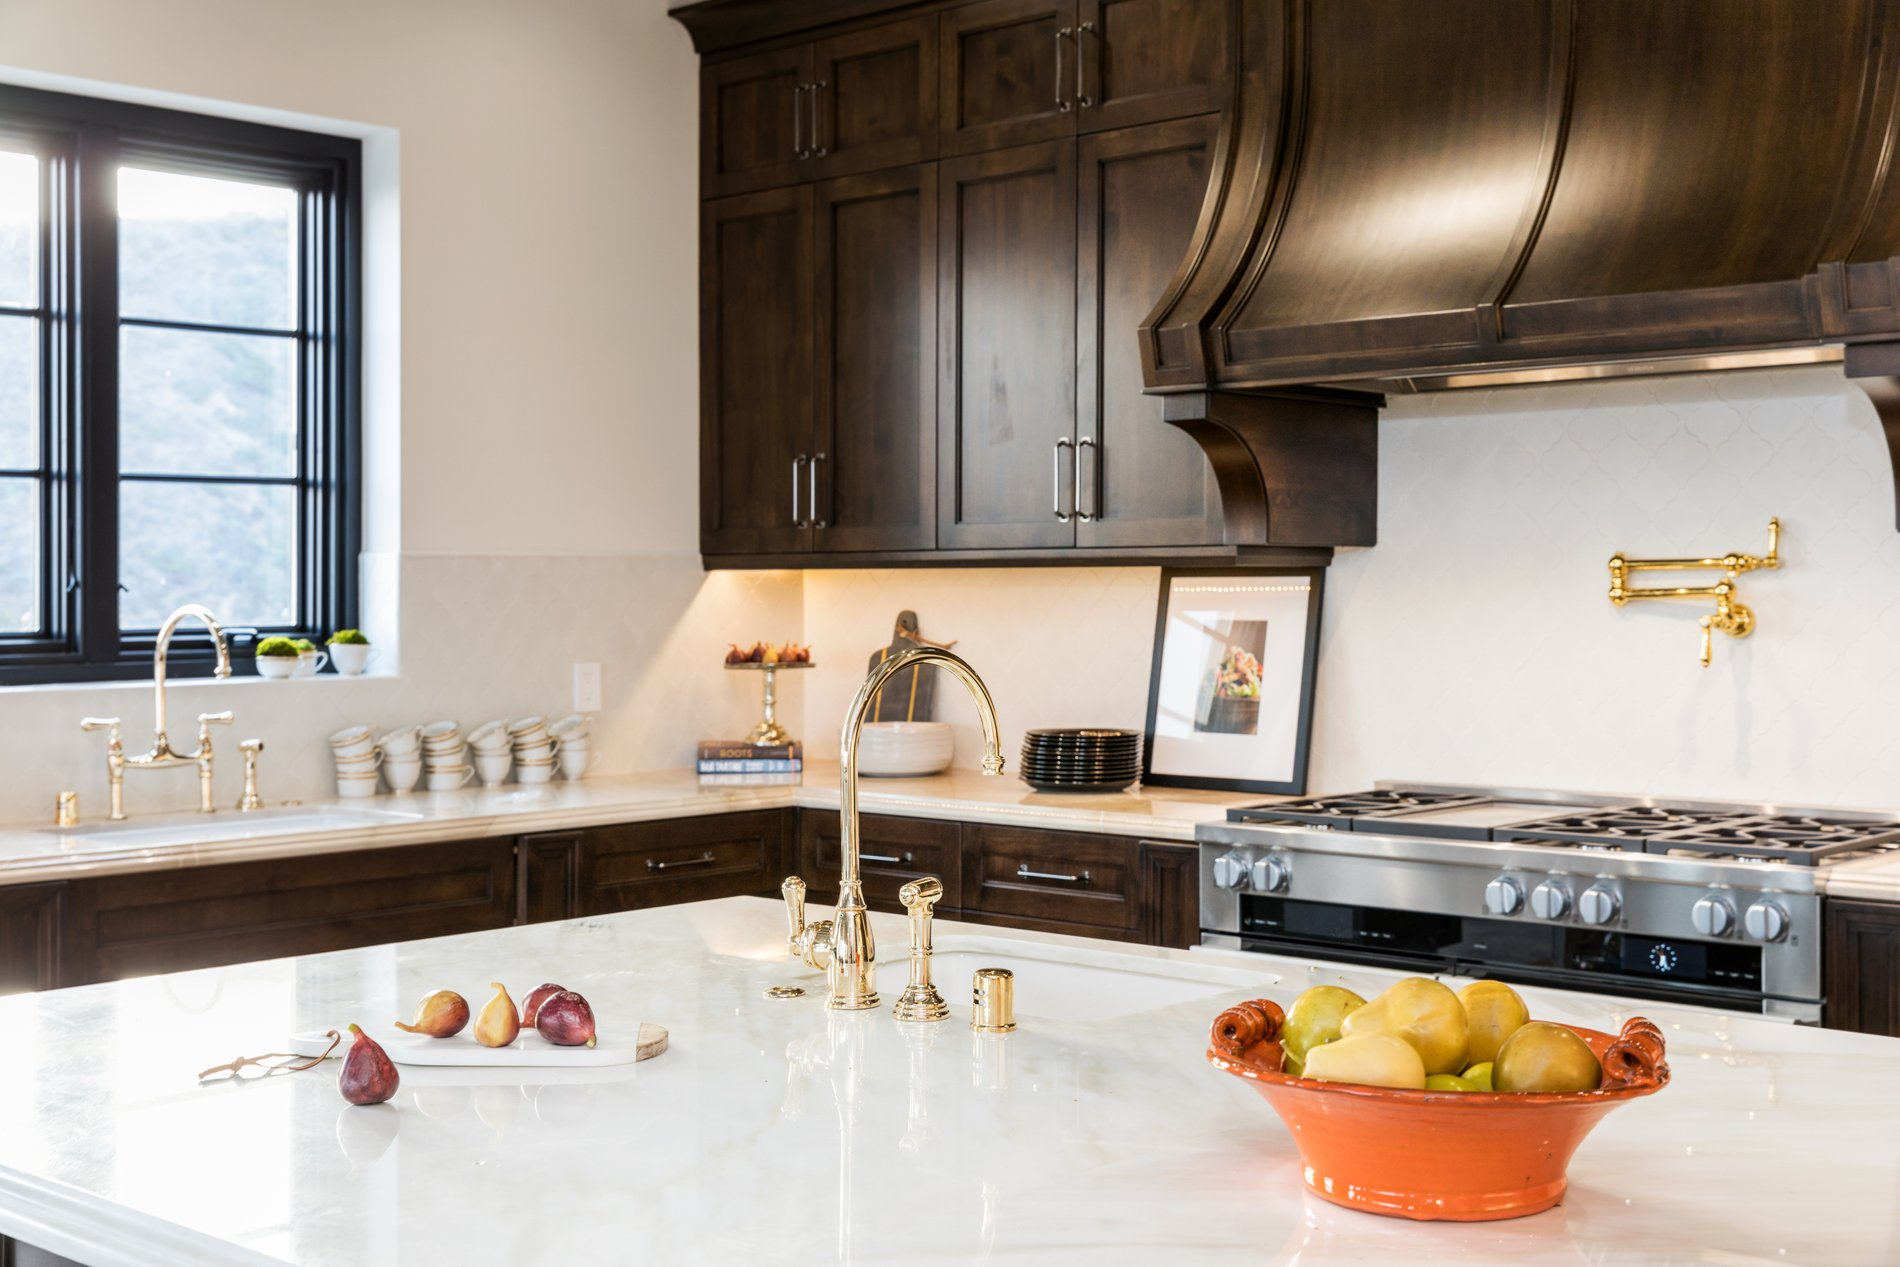 Large kitchen island with marble countertops and an undermount sink with gold faucet.